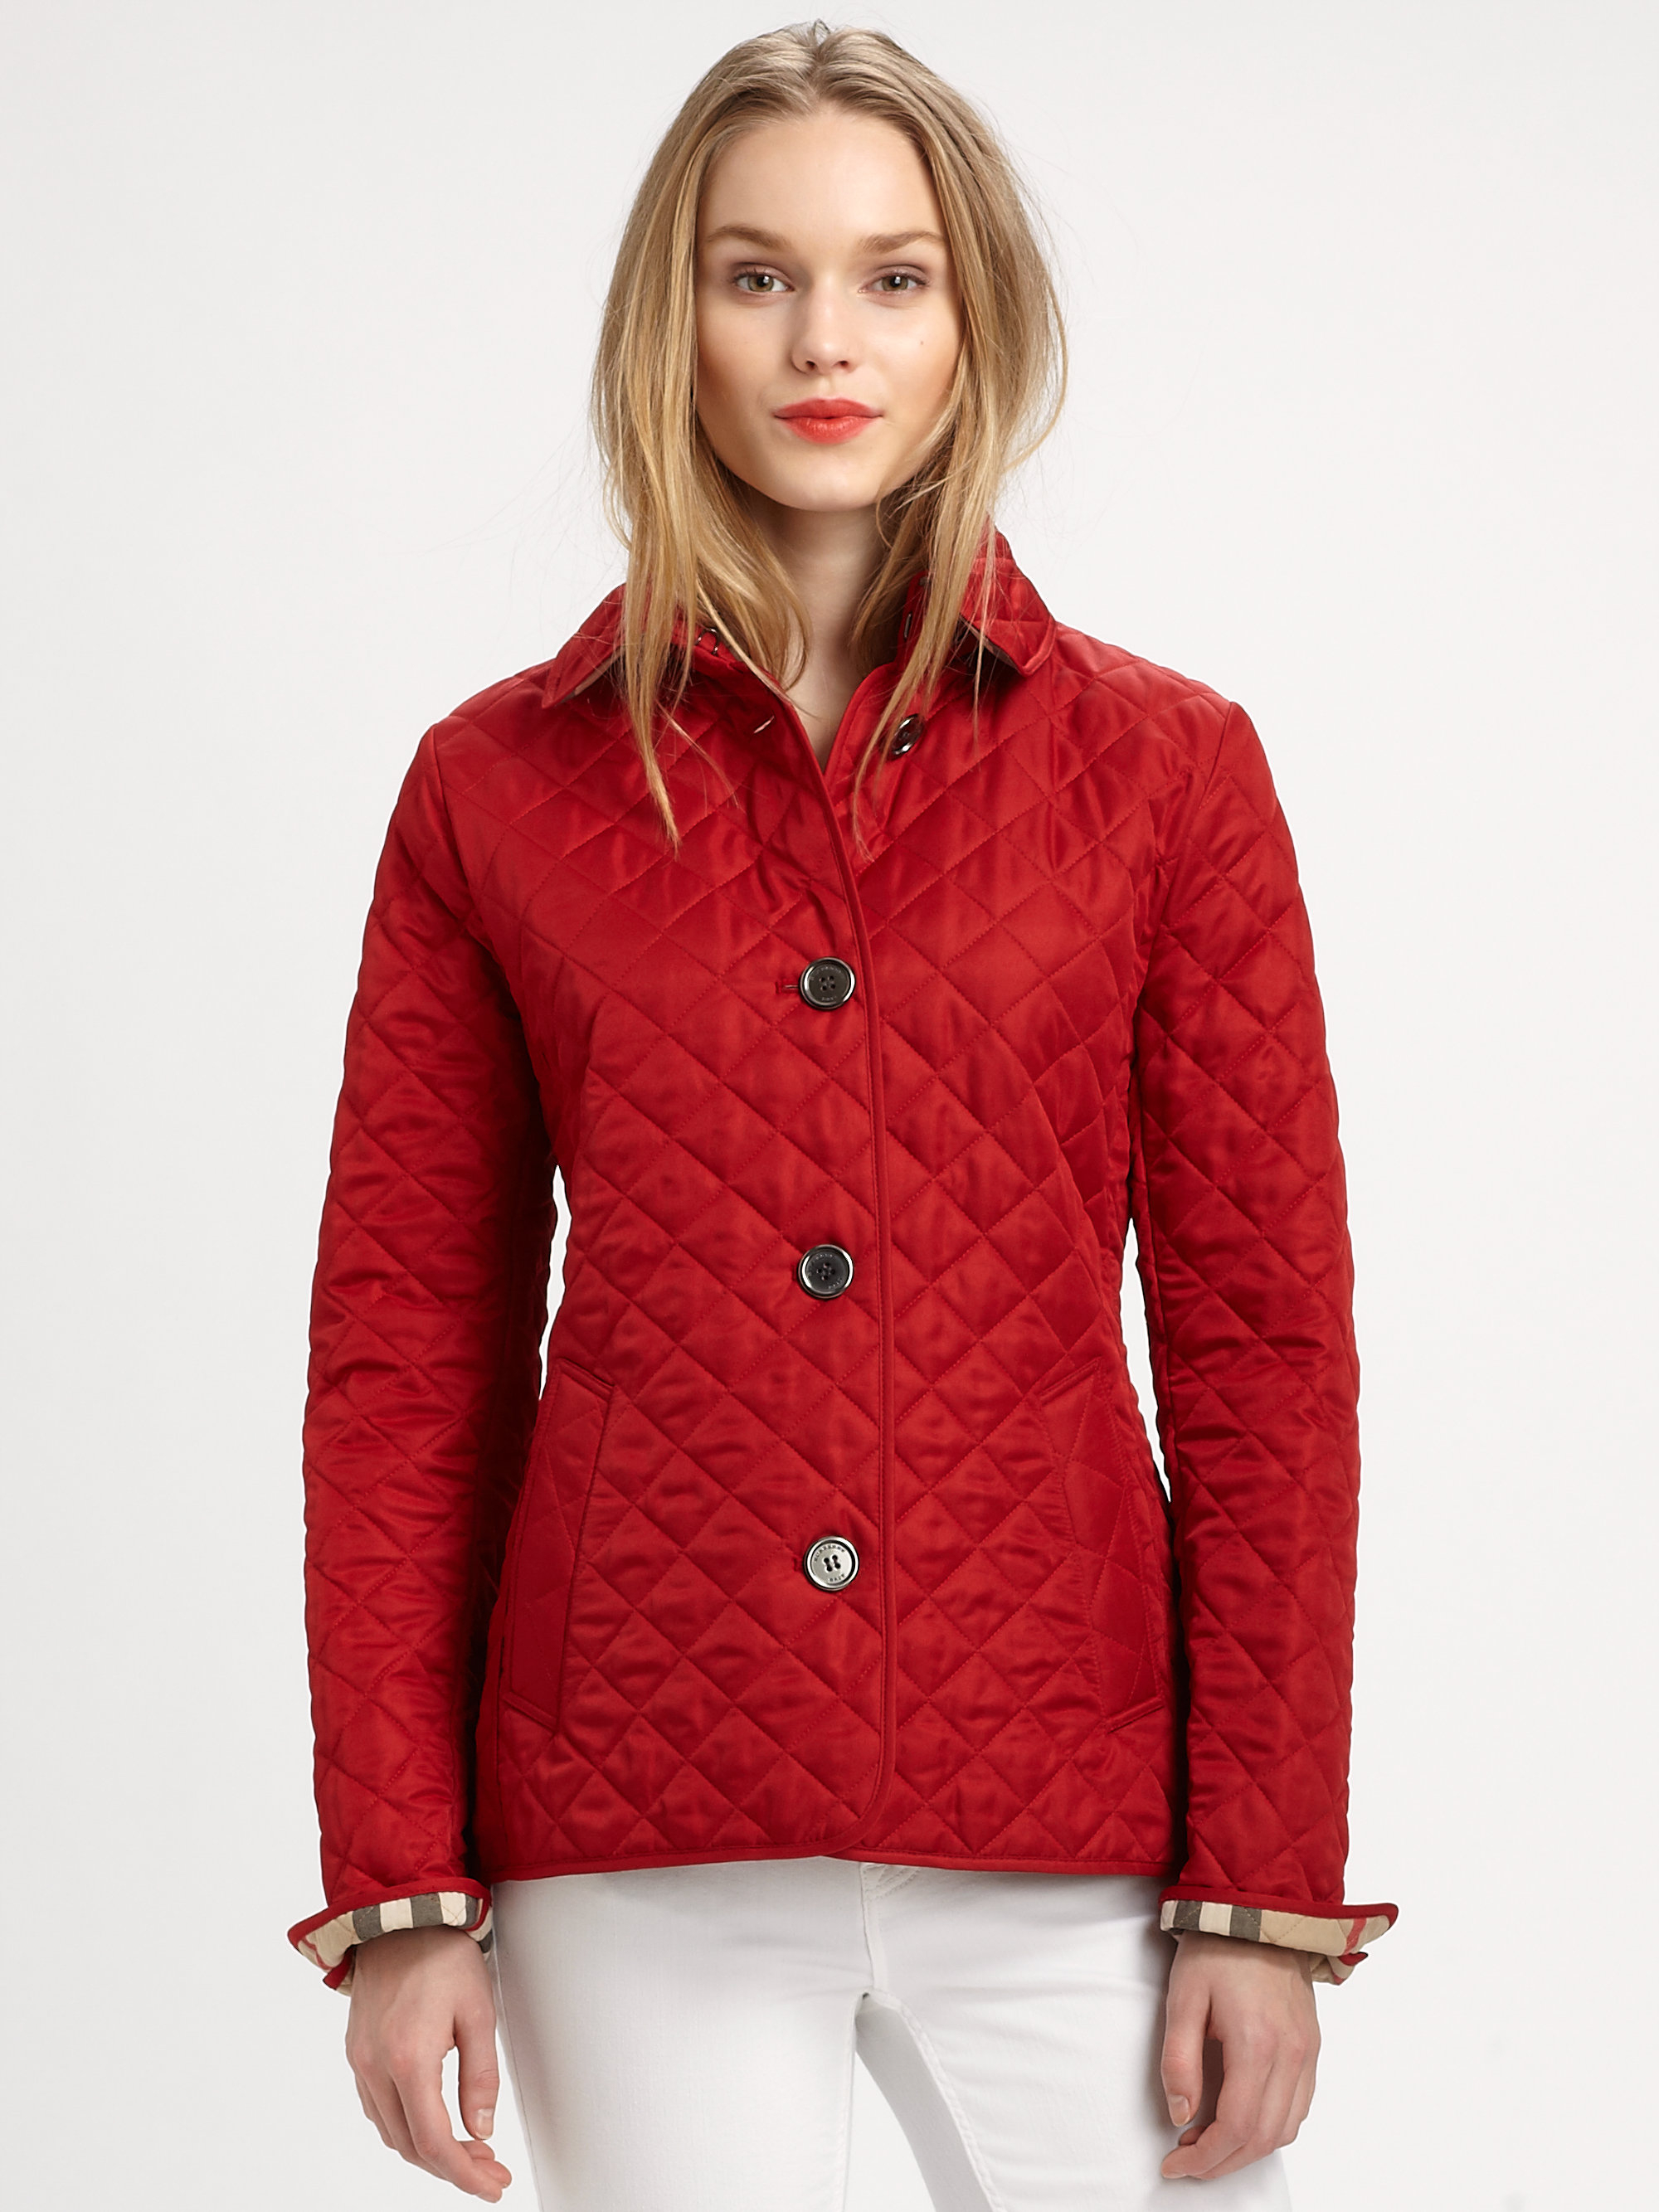 Burberry Brit Copford Jacket In Red Lyst